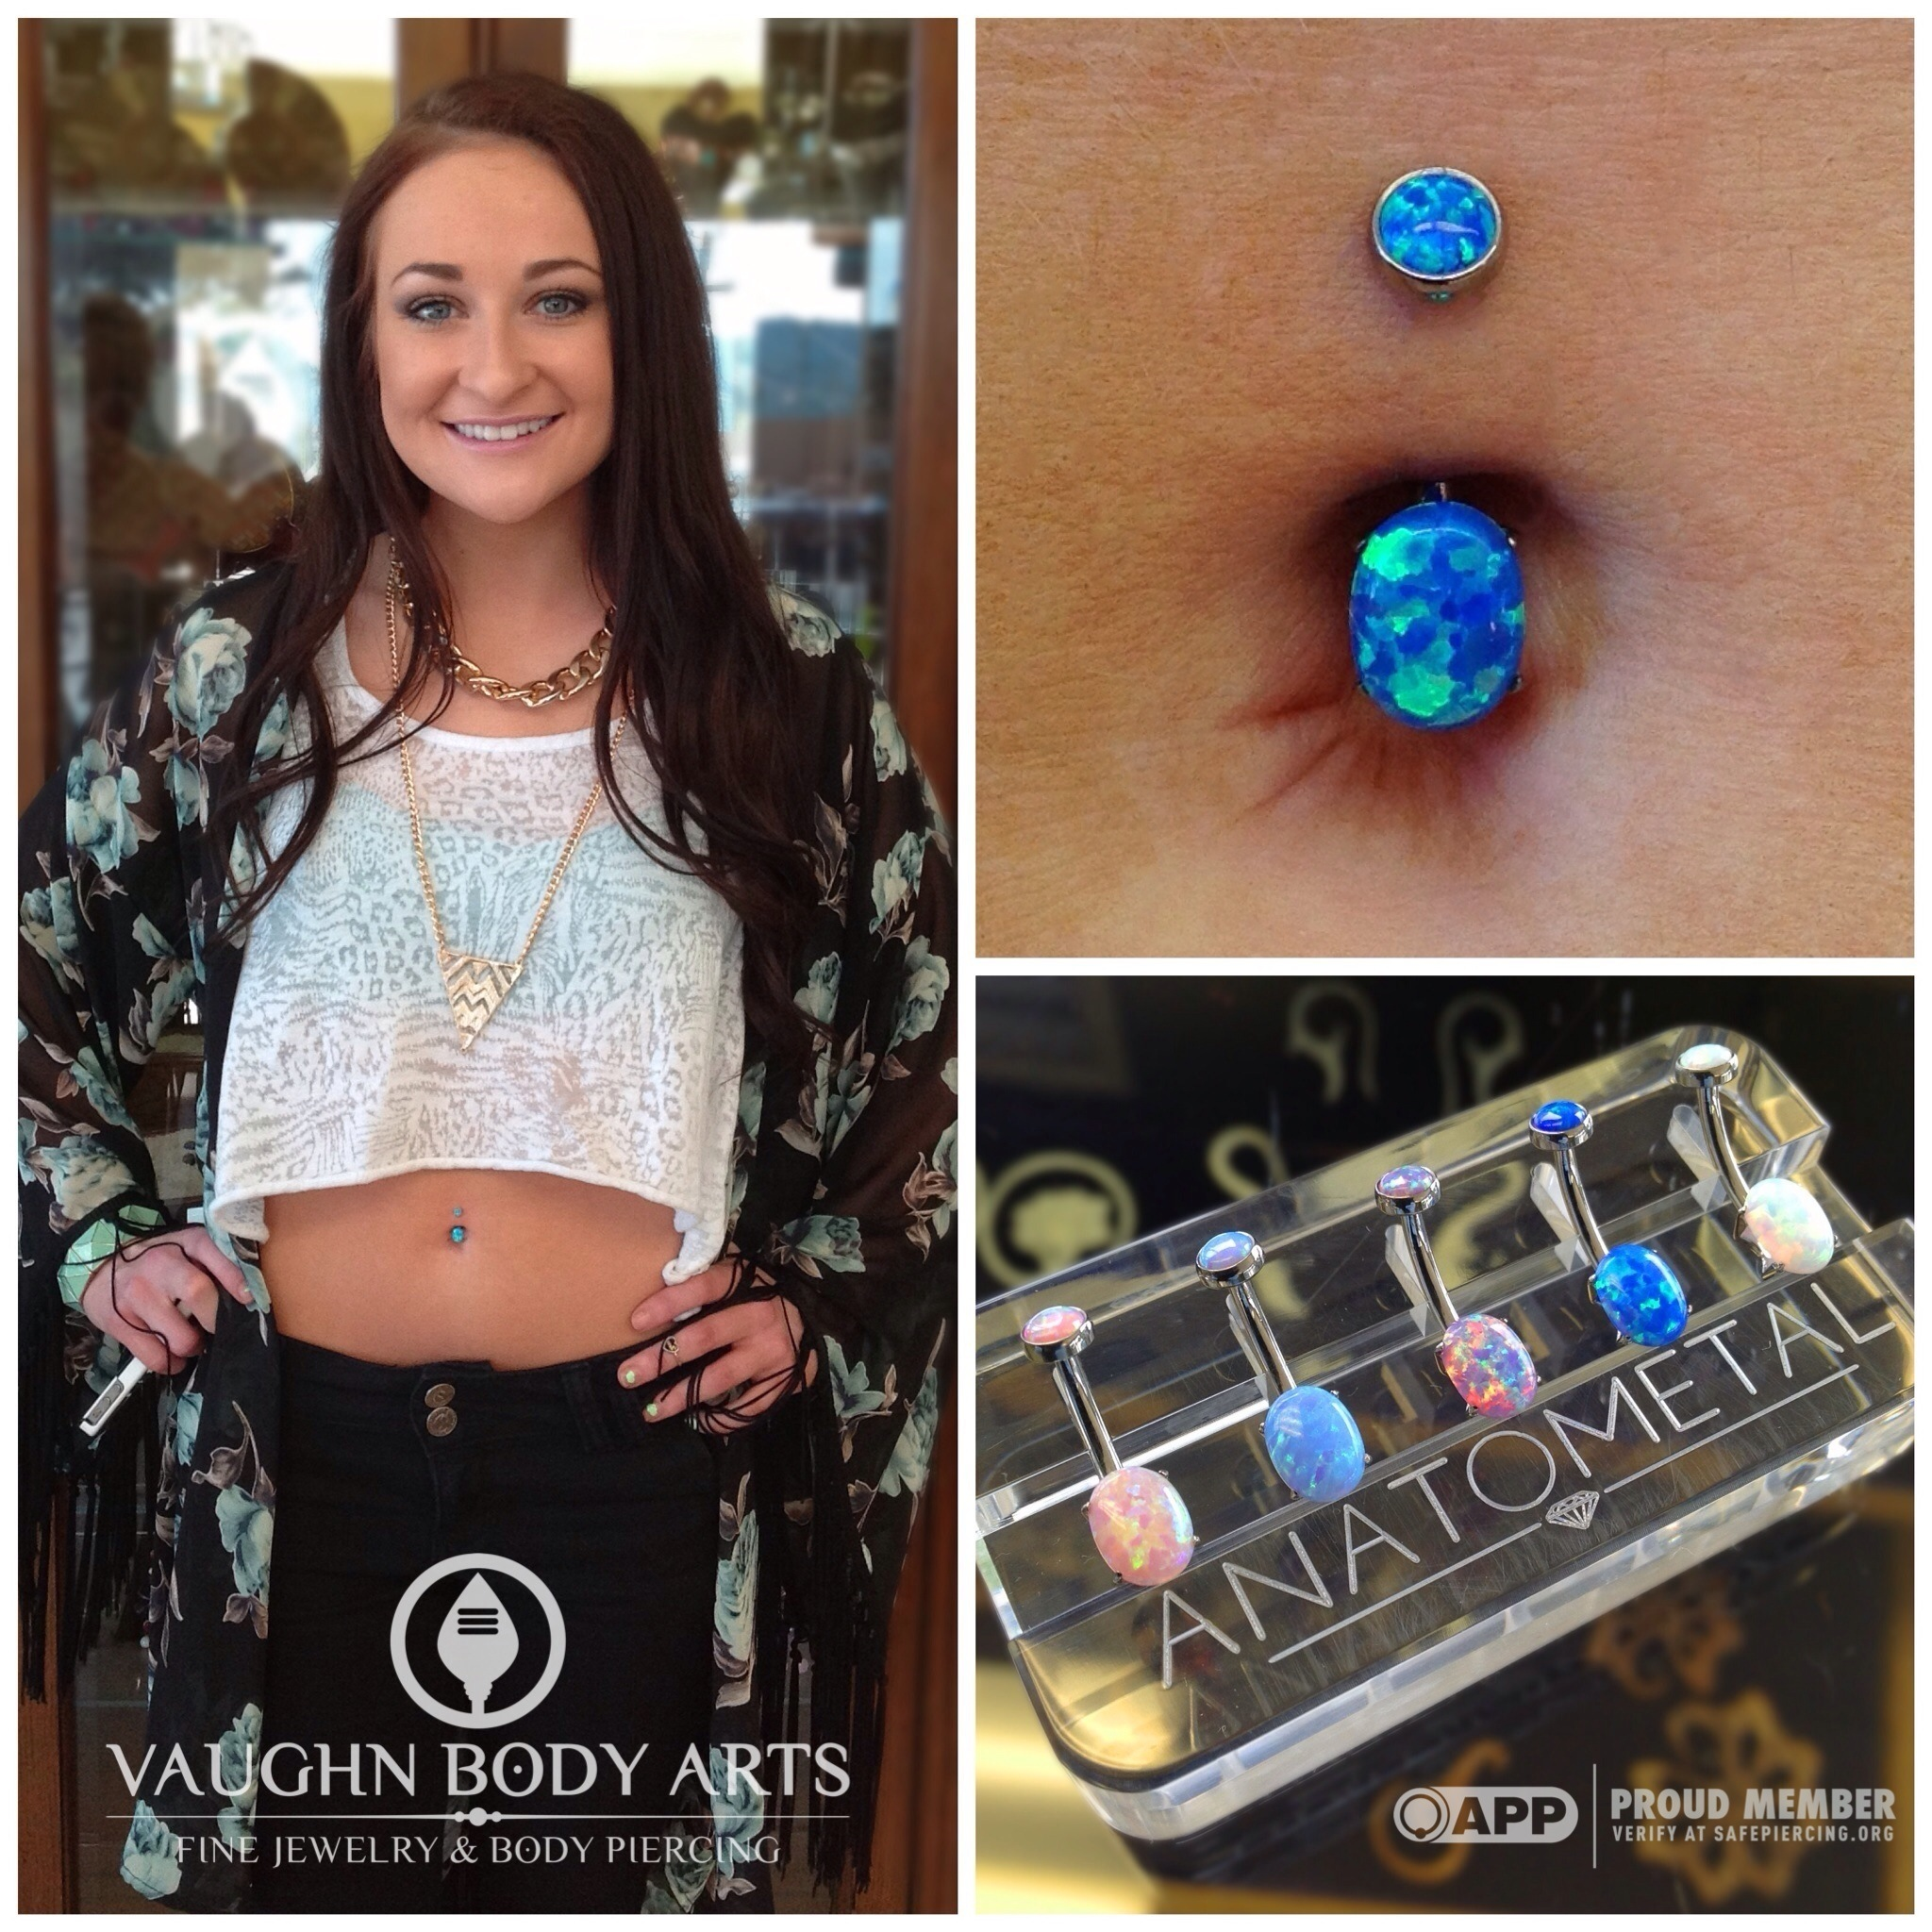 Navel piercing with titanium jewelry from Anatometal.